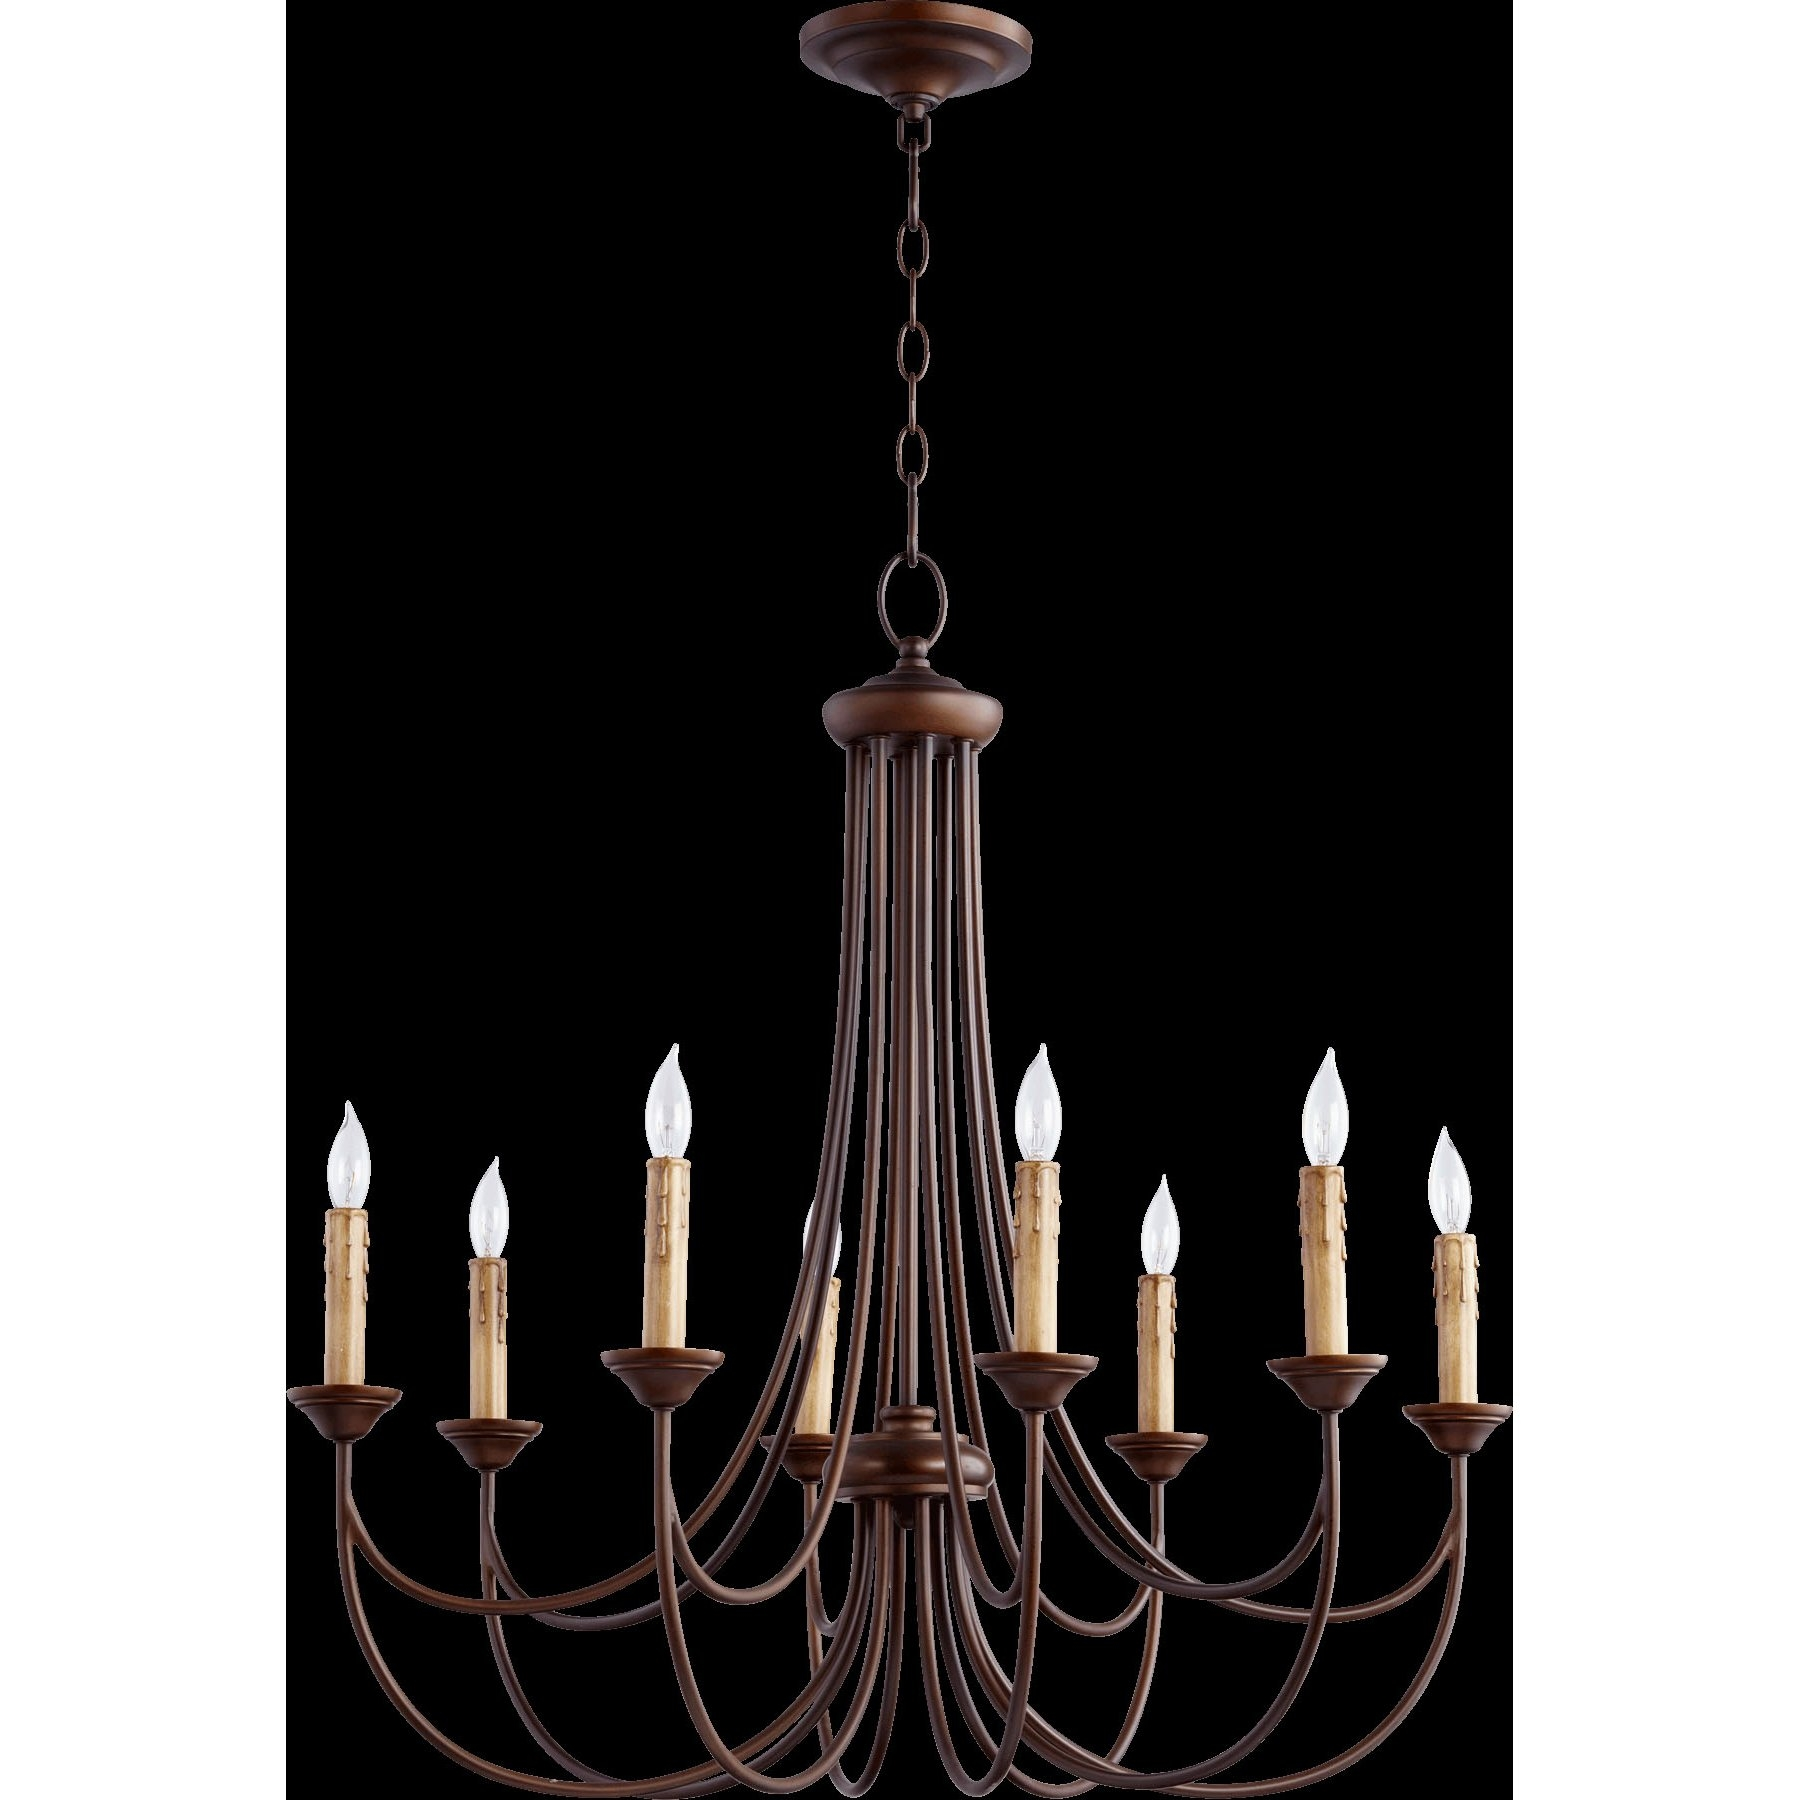 Quorum Brooks 8 Light Candle Style Chandelier Reviews Wayfair With Candle Light Chandelier (Image 13 of 15)